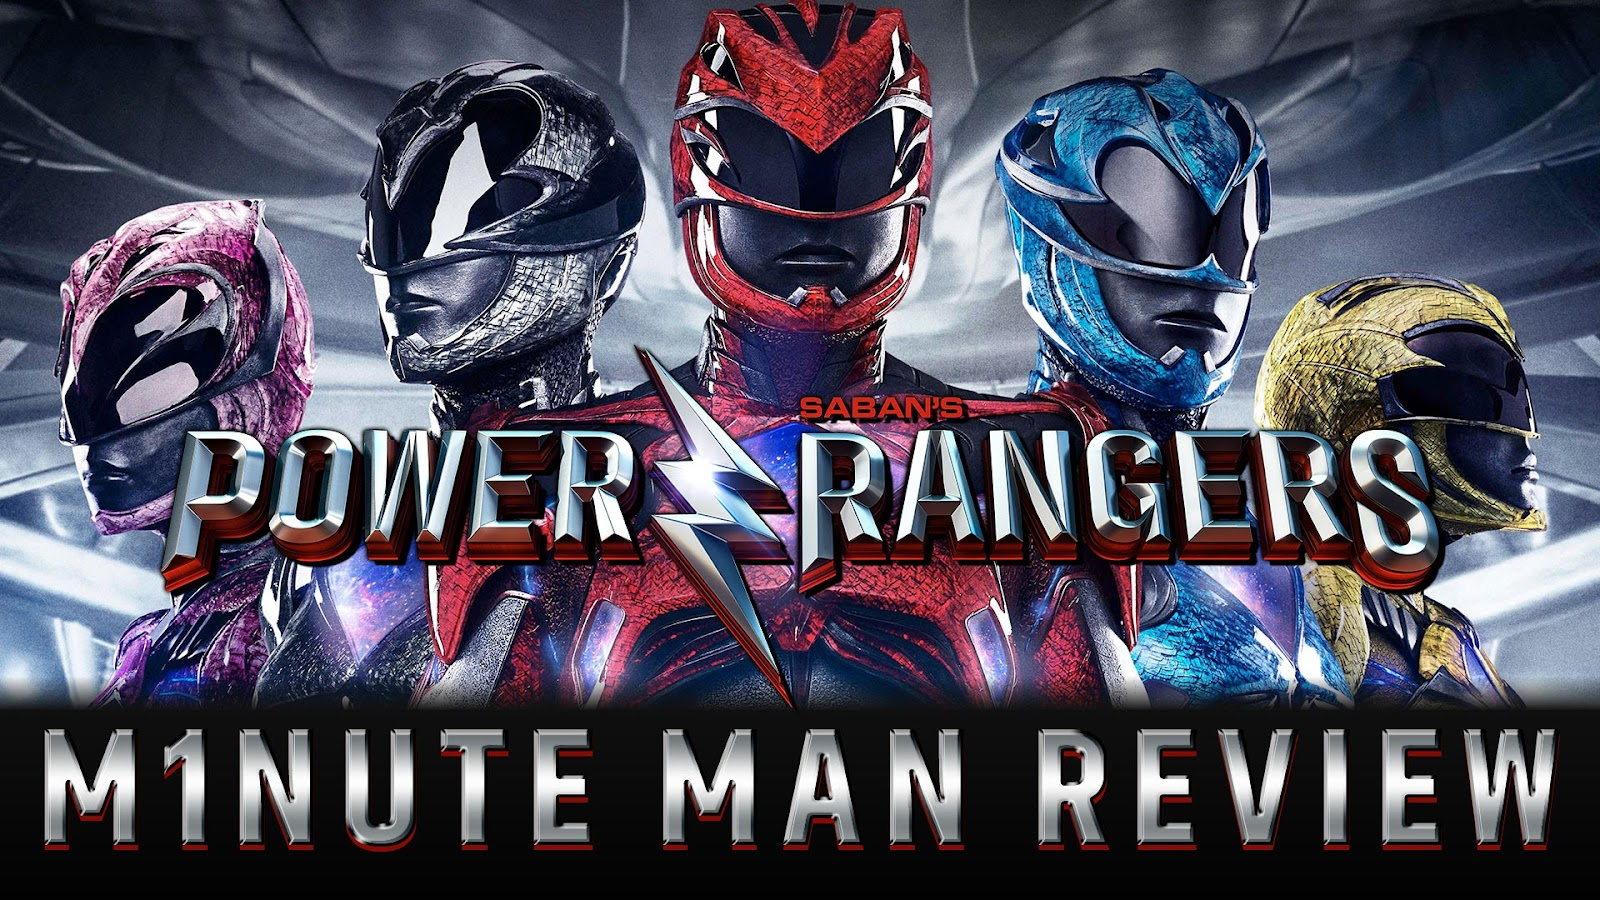 movie review Power Rangers podcast